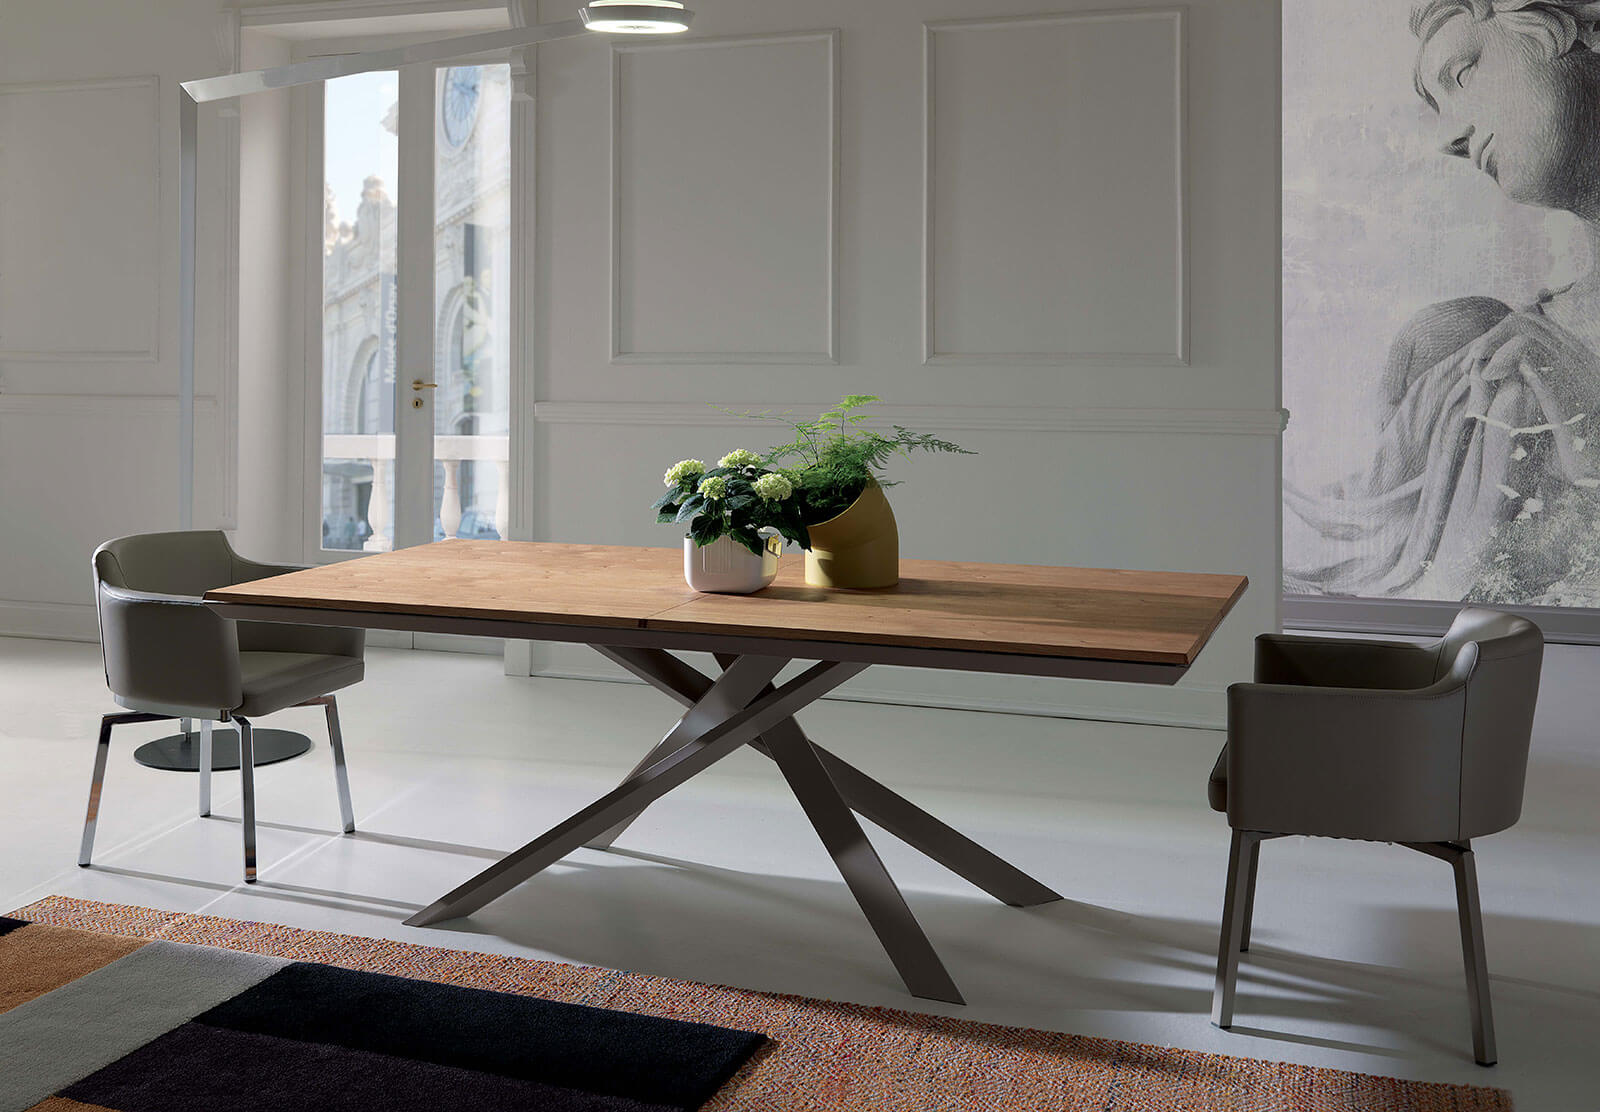 4x4 X Amazing. An Extending Dining Table